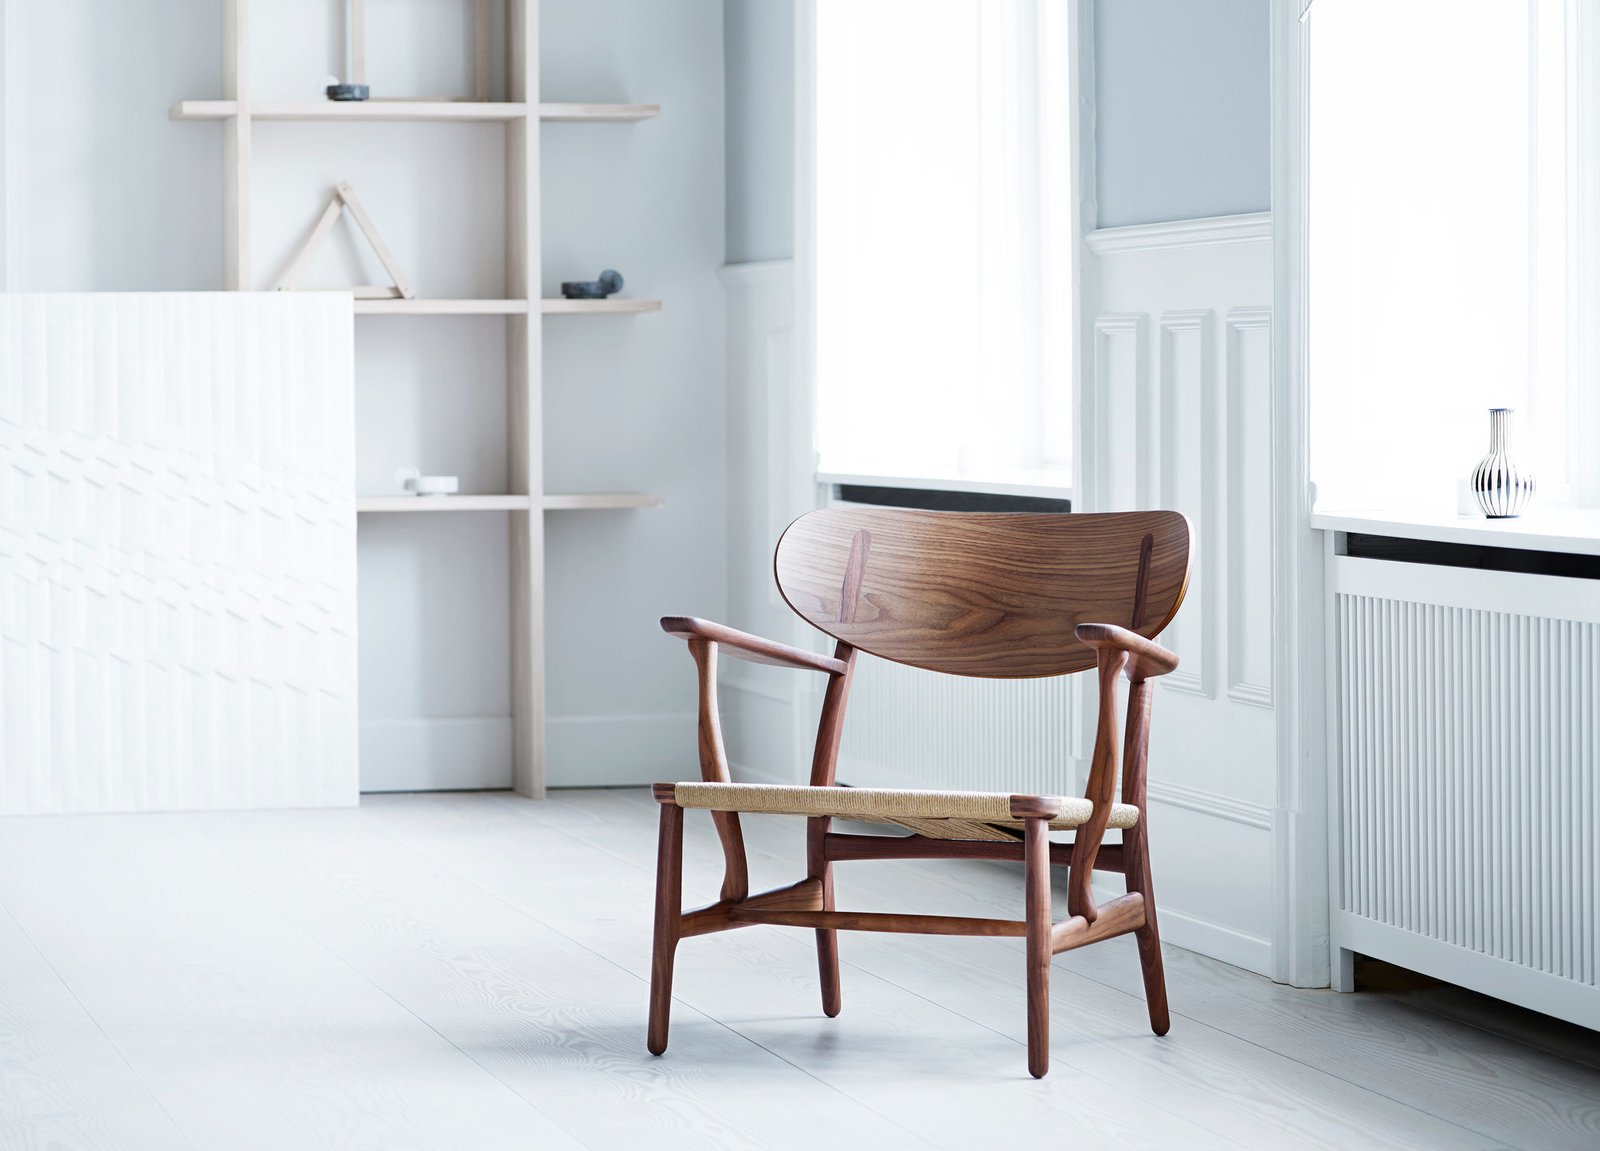 CH23 And CH22 Chairs By Hans J. Wegner - Photo 1 of 7